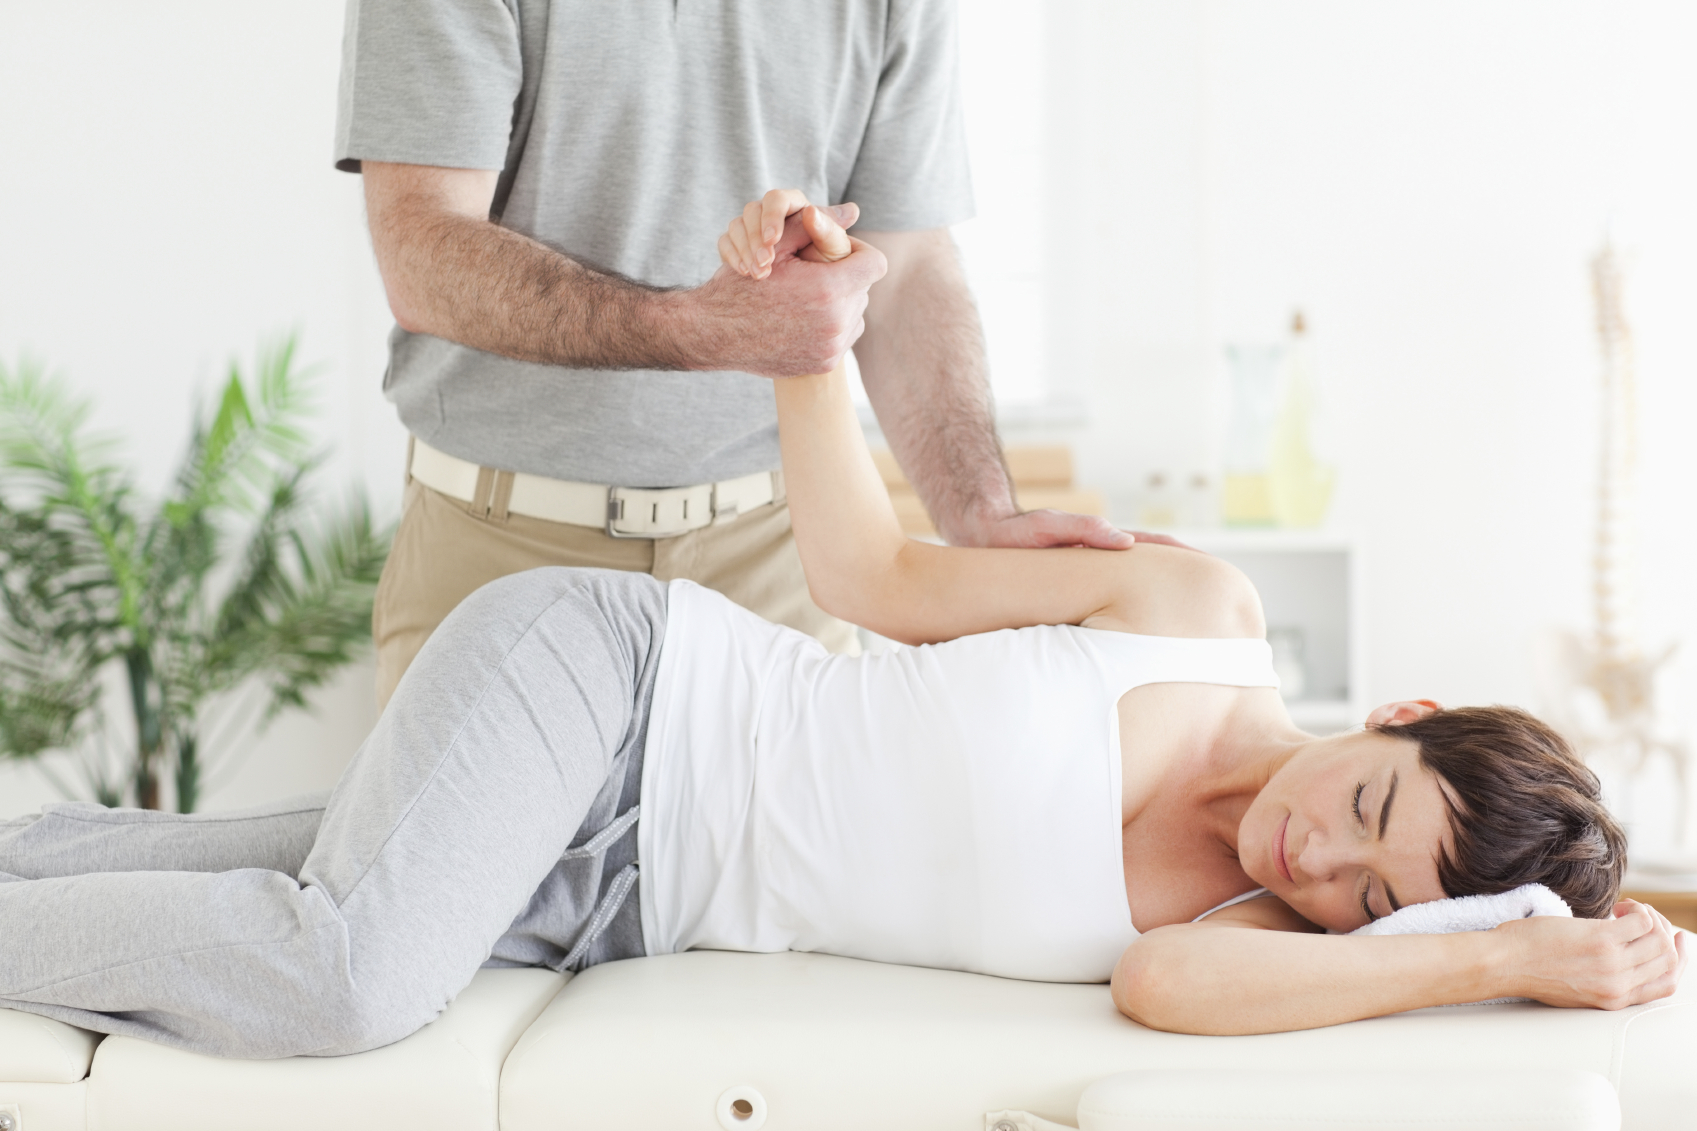 chiropractic adjustment